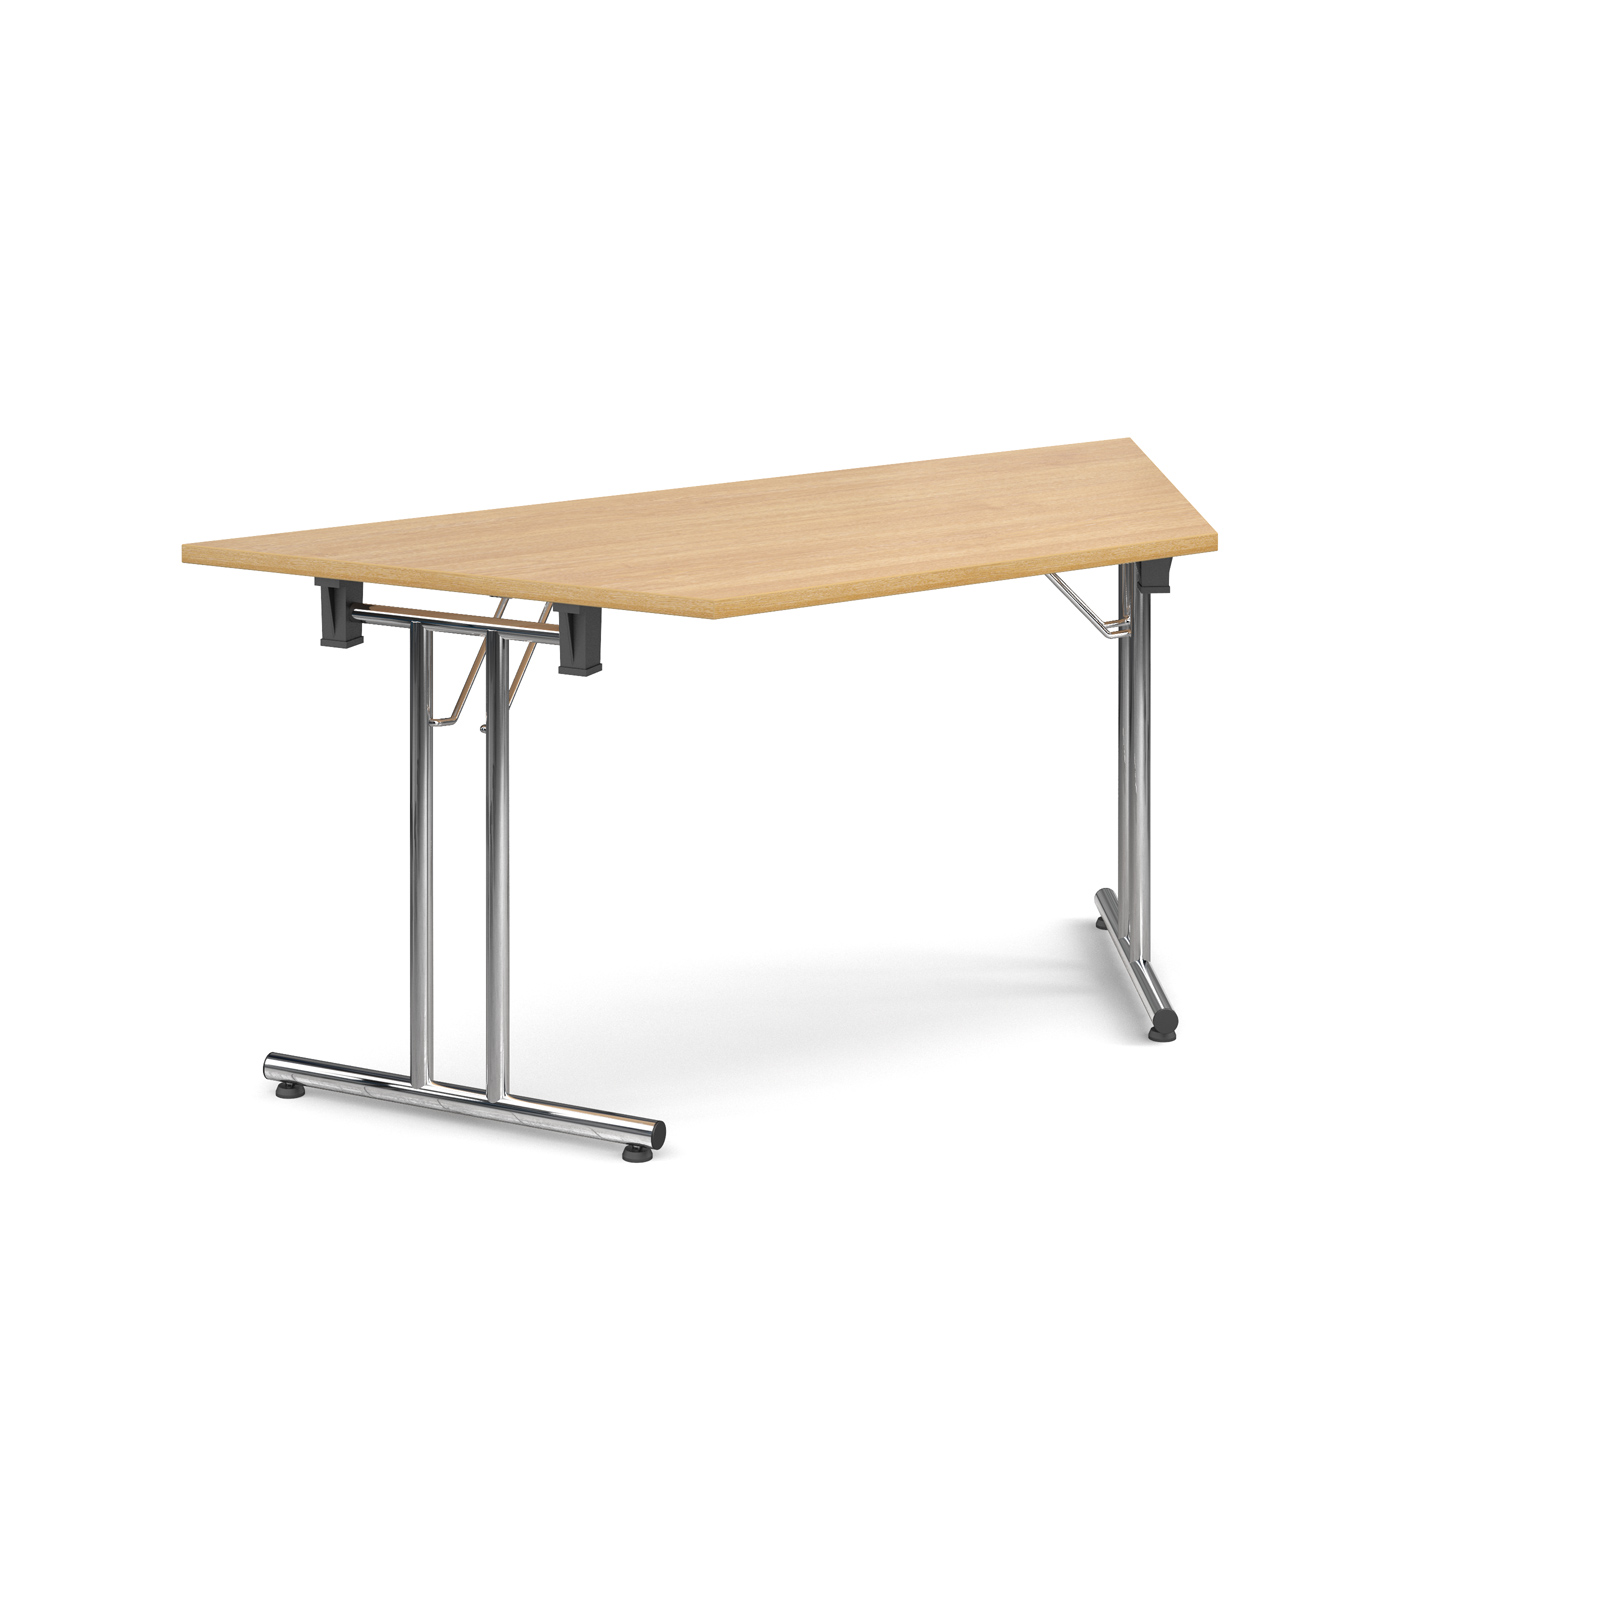 Trapezoidal deluxe folding leg table 1600mm x 800mm - oak